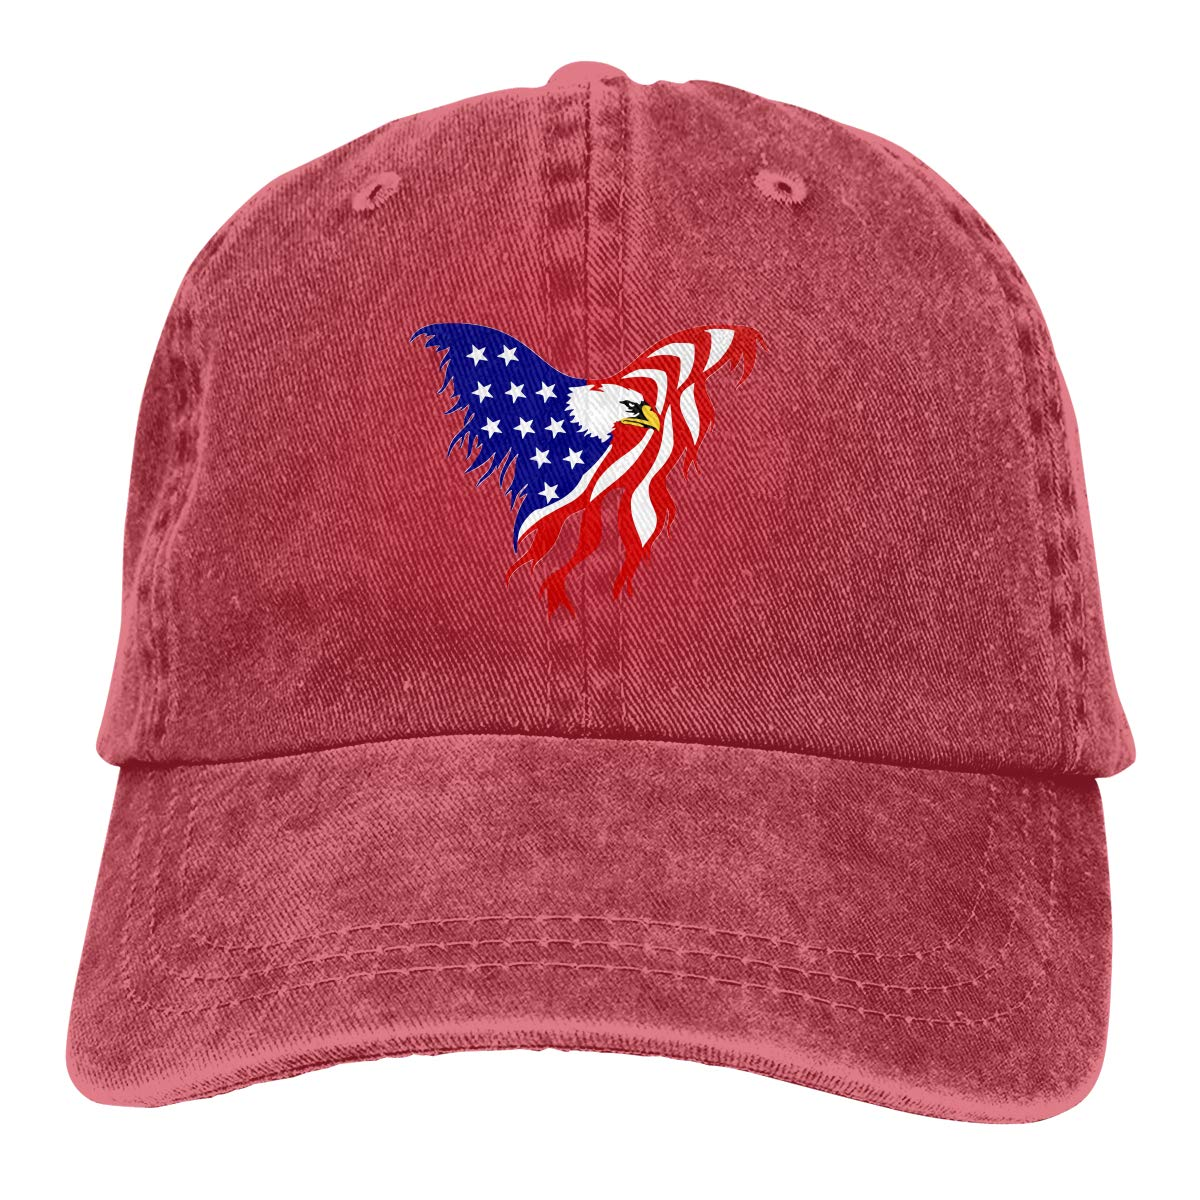 Eagle USA Flag Fashion Adjustable Cowboy Cap Denim Hat for Women and Men